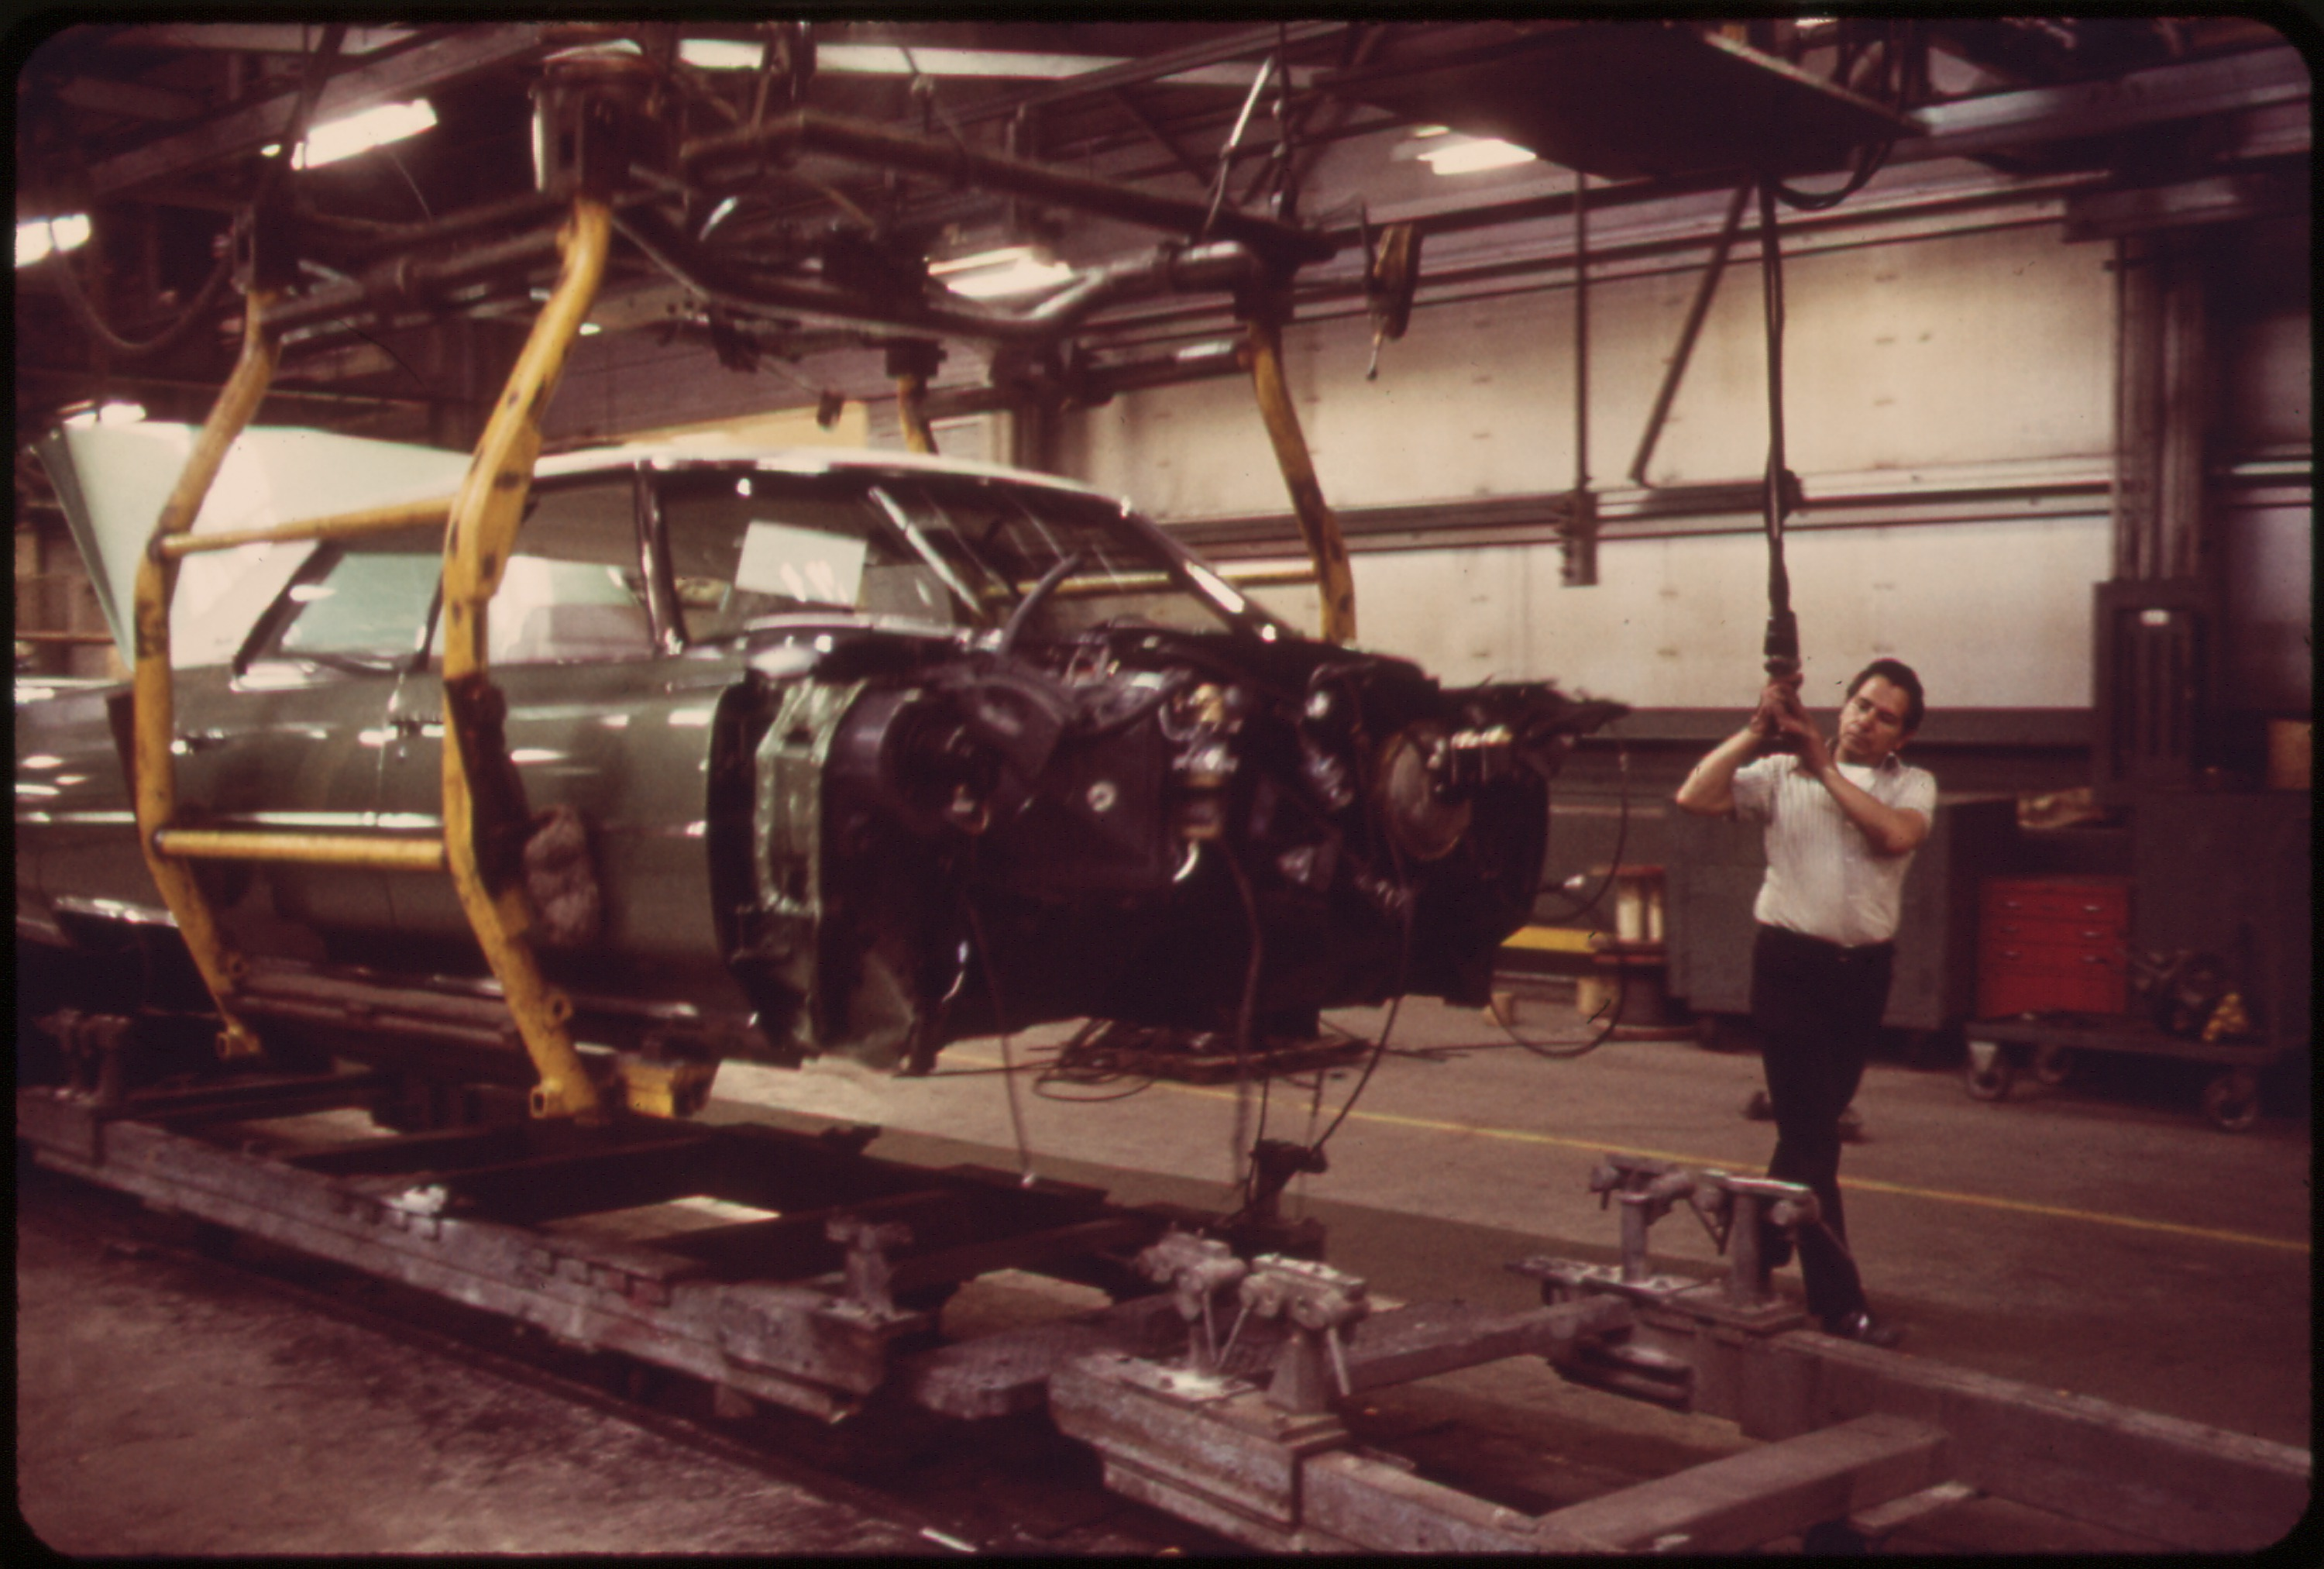 ON_THE_CADILLAC_ASSEMBLY_LINE-WIRING_IS_